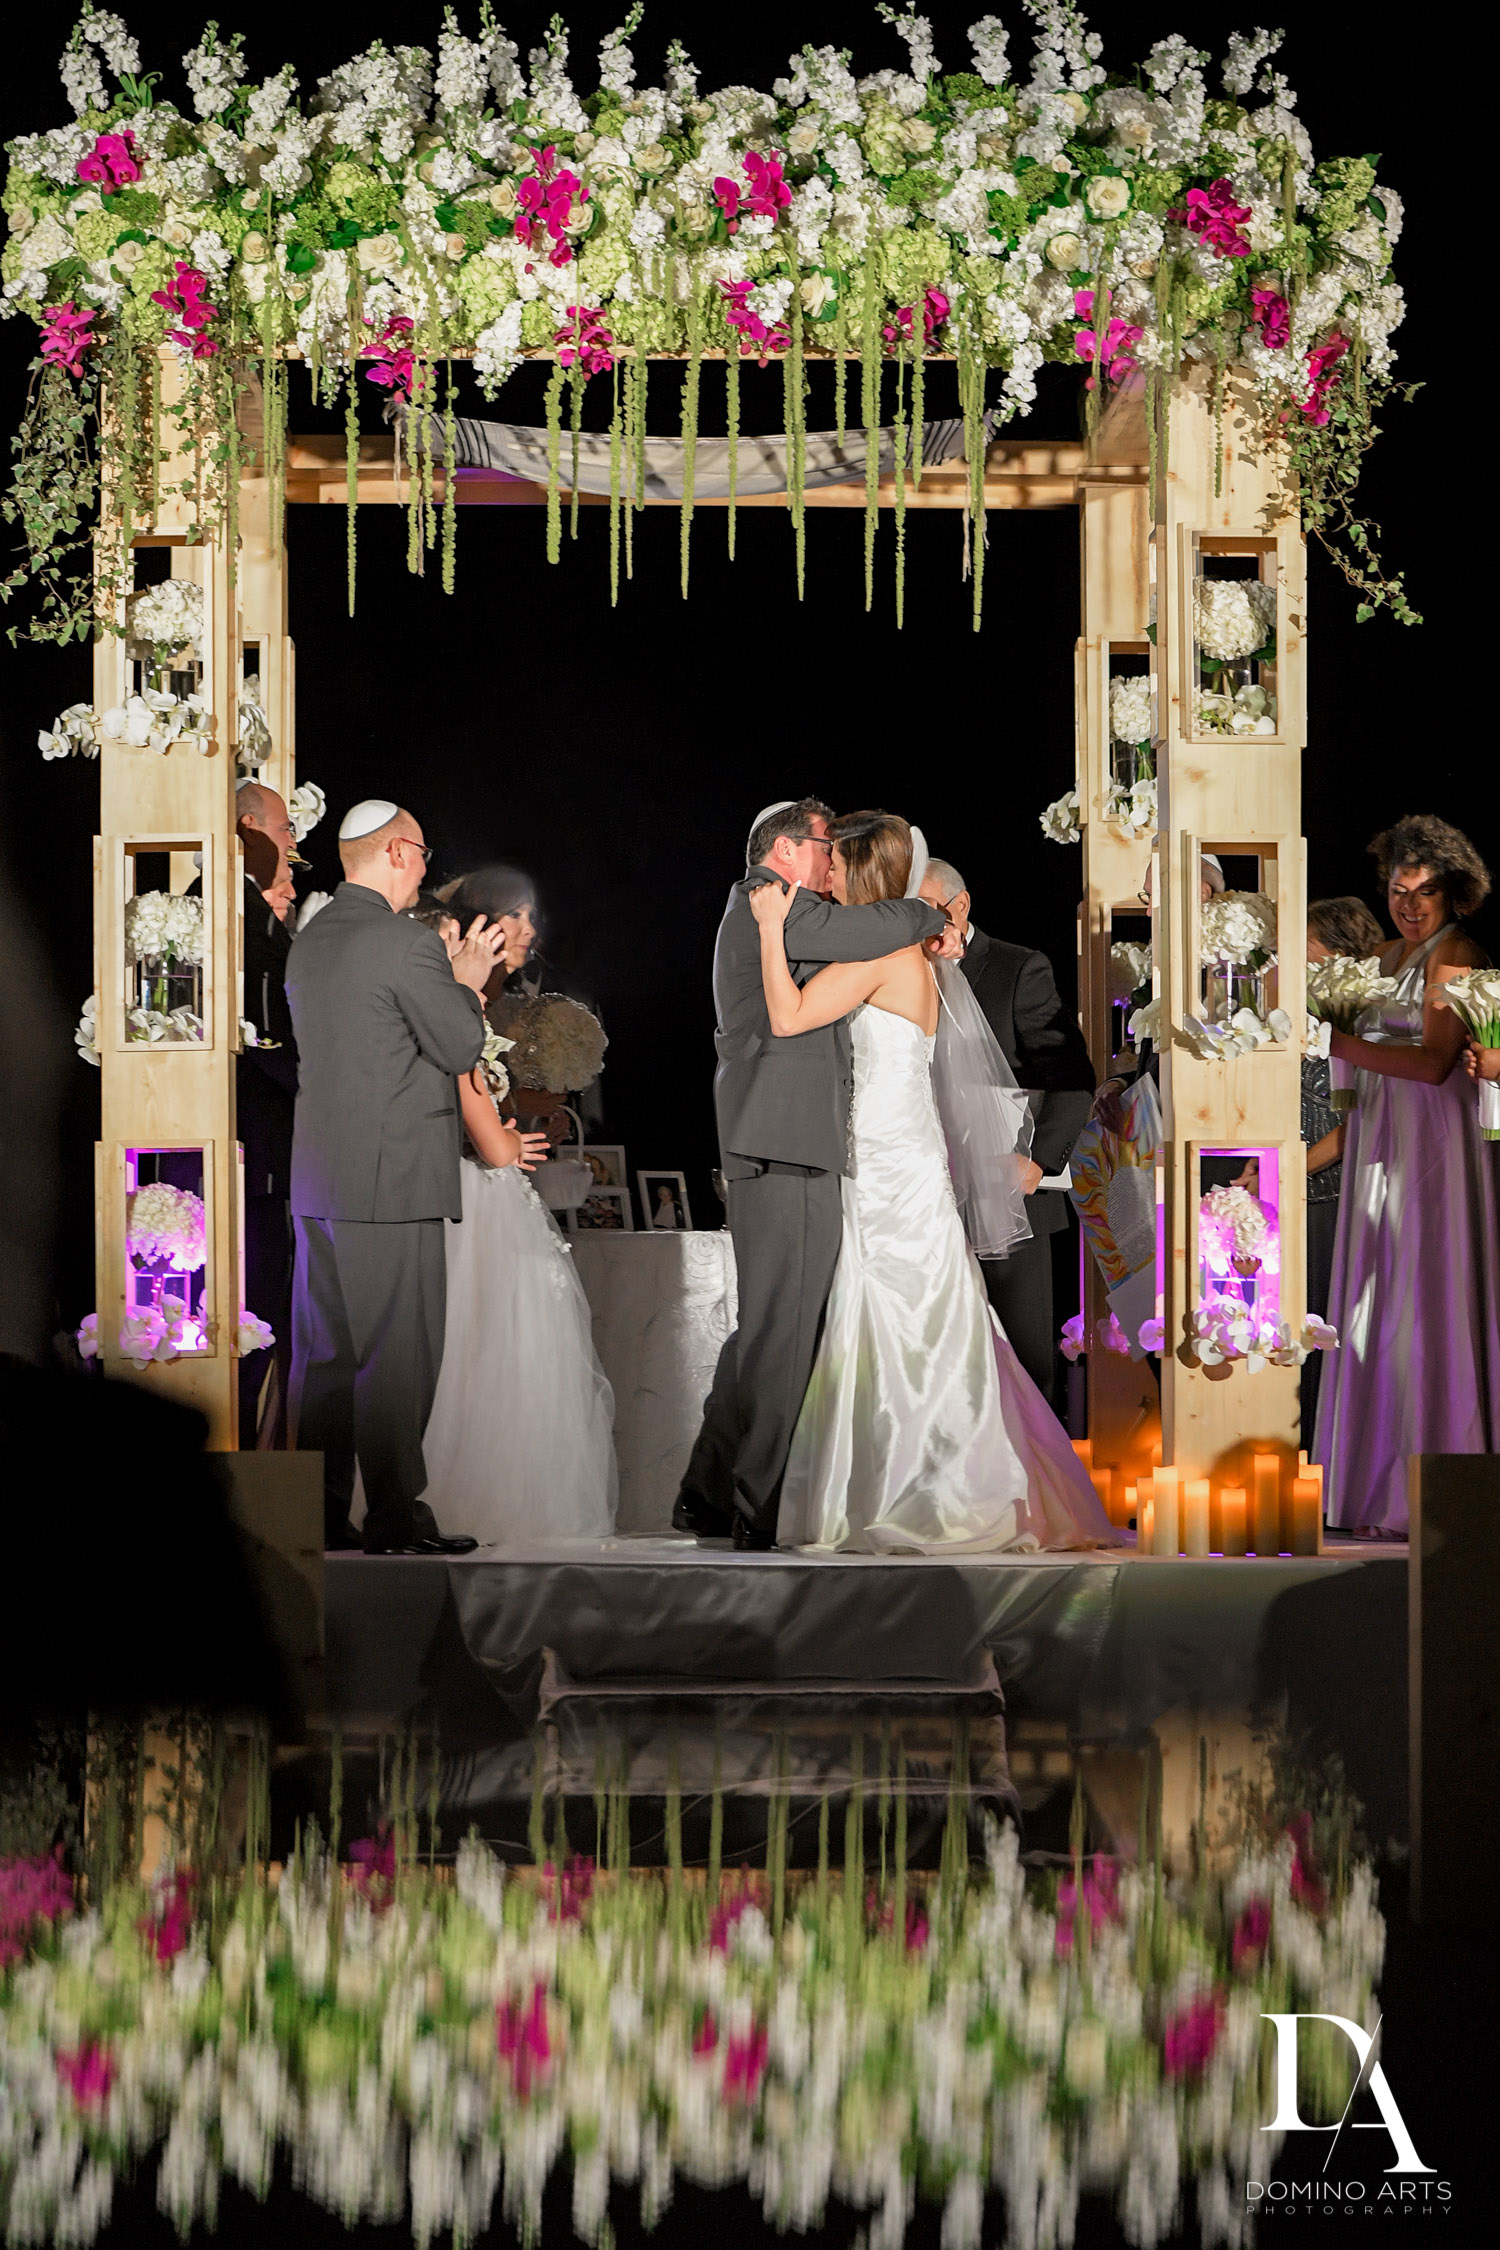 Beautiful chuppah Wedding Photography in South Florida at Fort Lauderdale Marriott Harbor Beach Resort & Spa by Domino Arts Photography